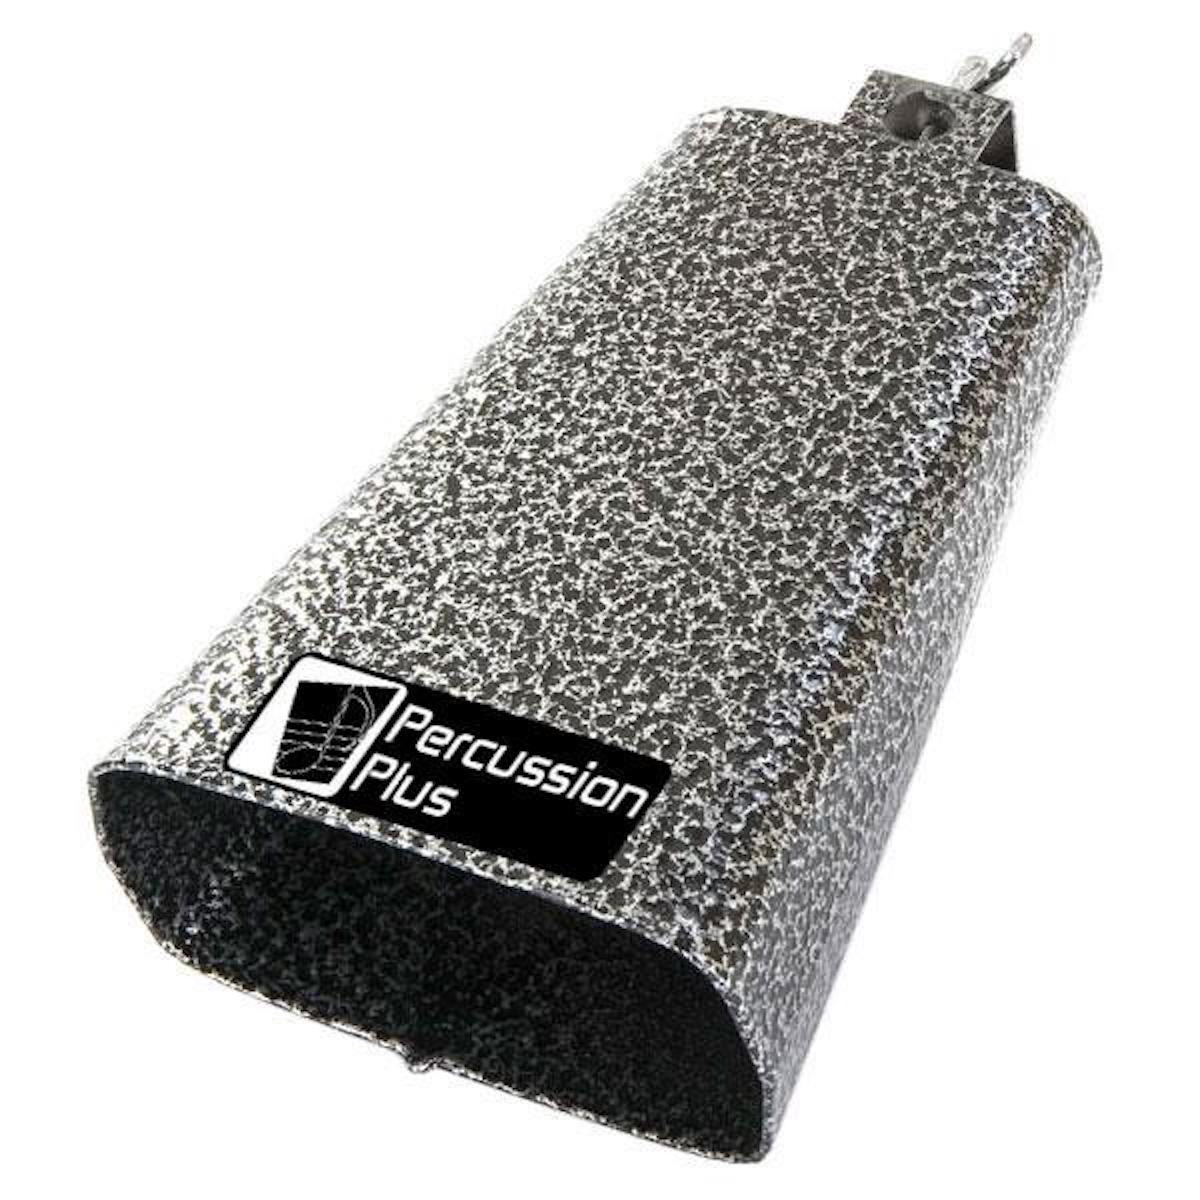 Percussion Plus Cowbell (various sizes)